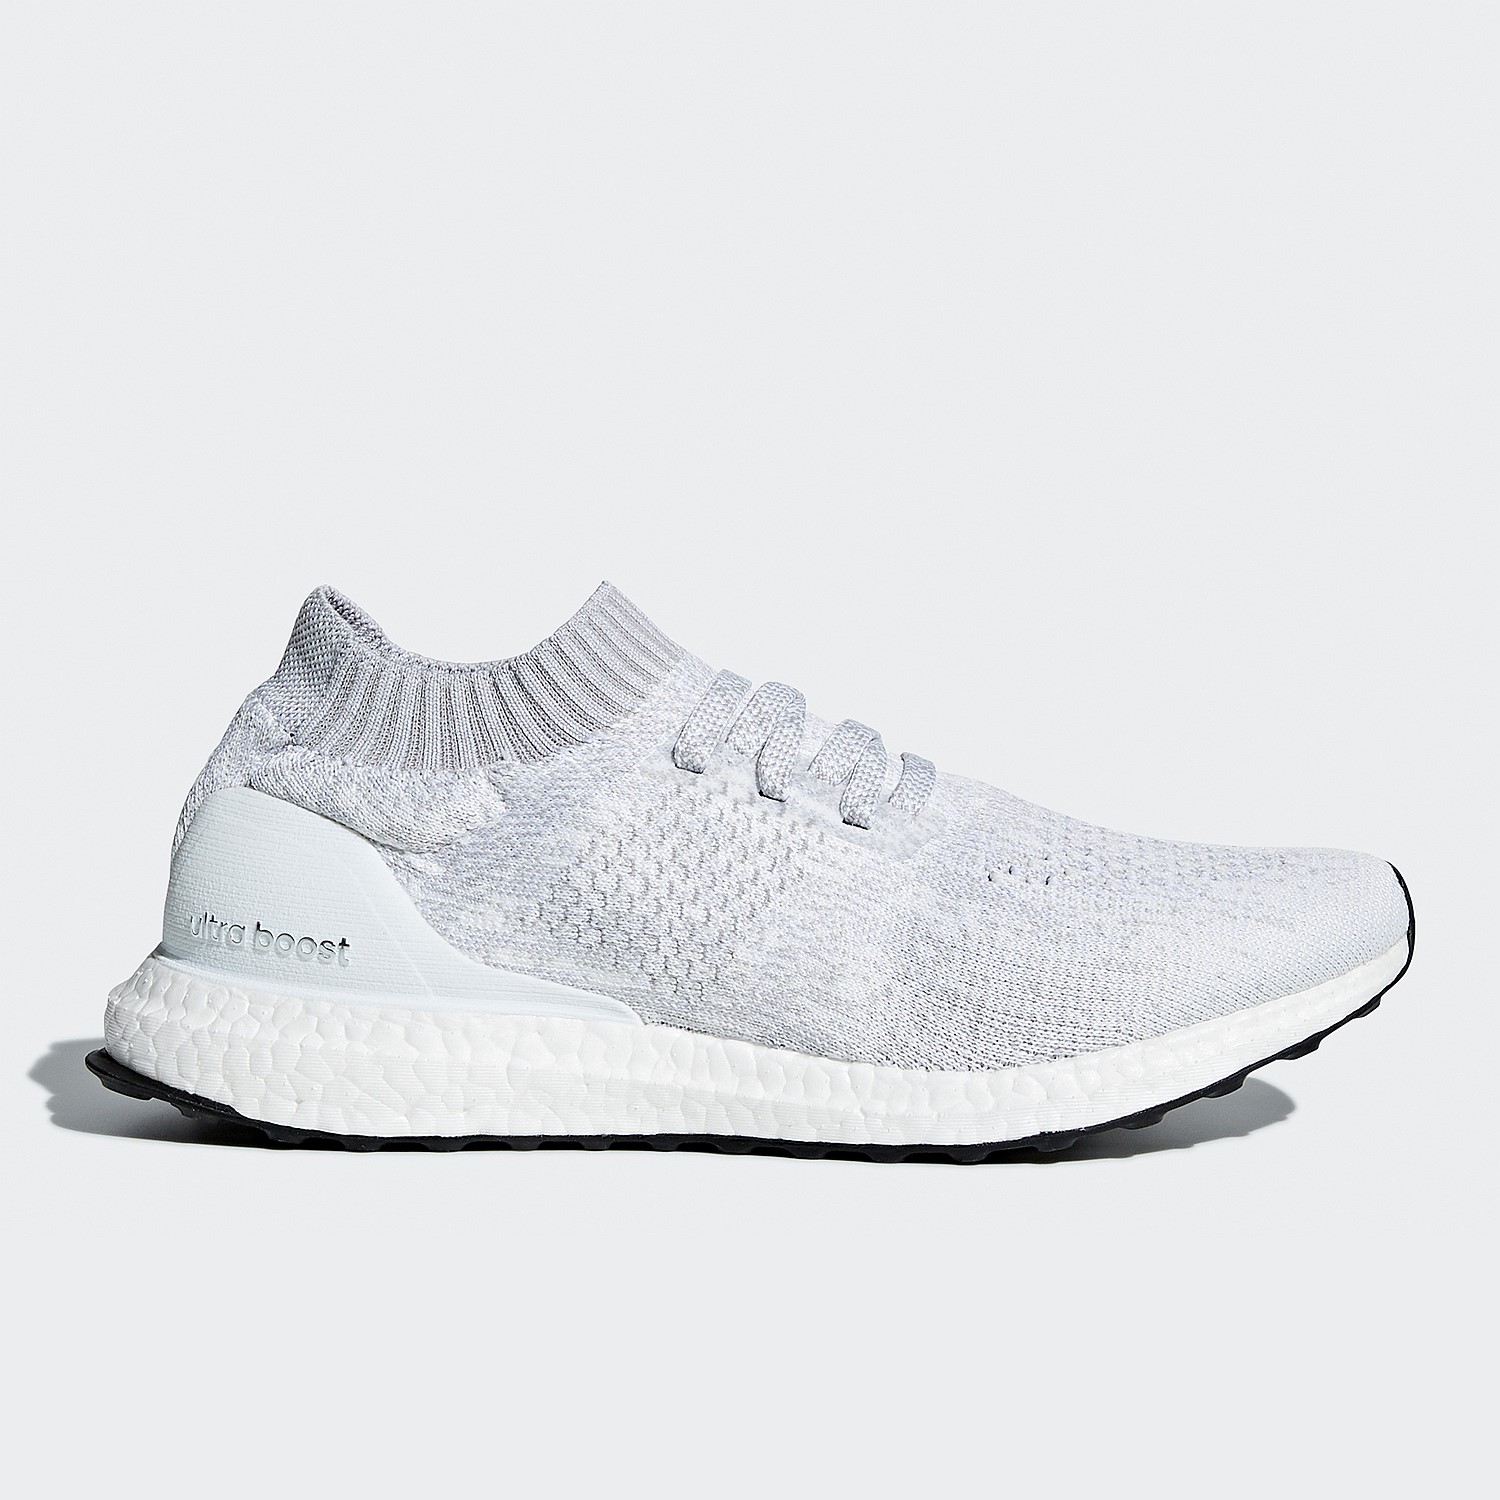 fa9a23977a162 Ultraboost Uncaged